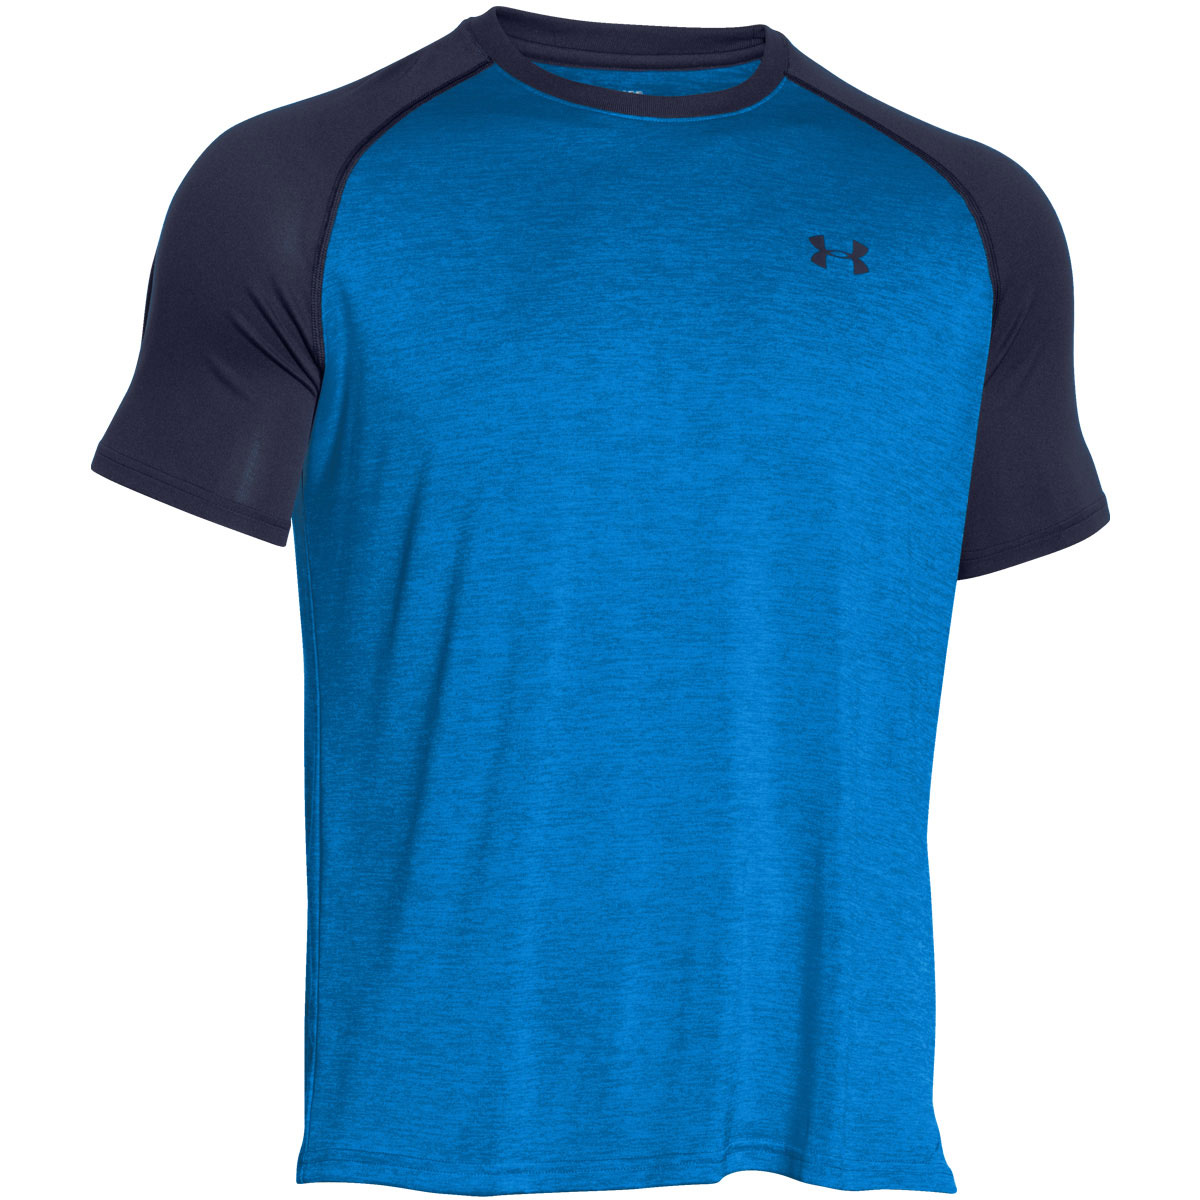 Under armour 2015 mens ua tech short sleeve t shirt for Under armour men s tech short sleeve t shirt